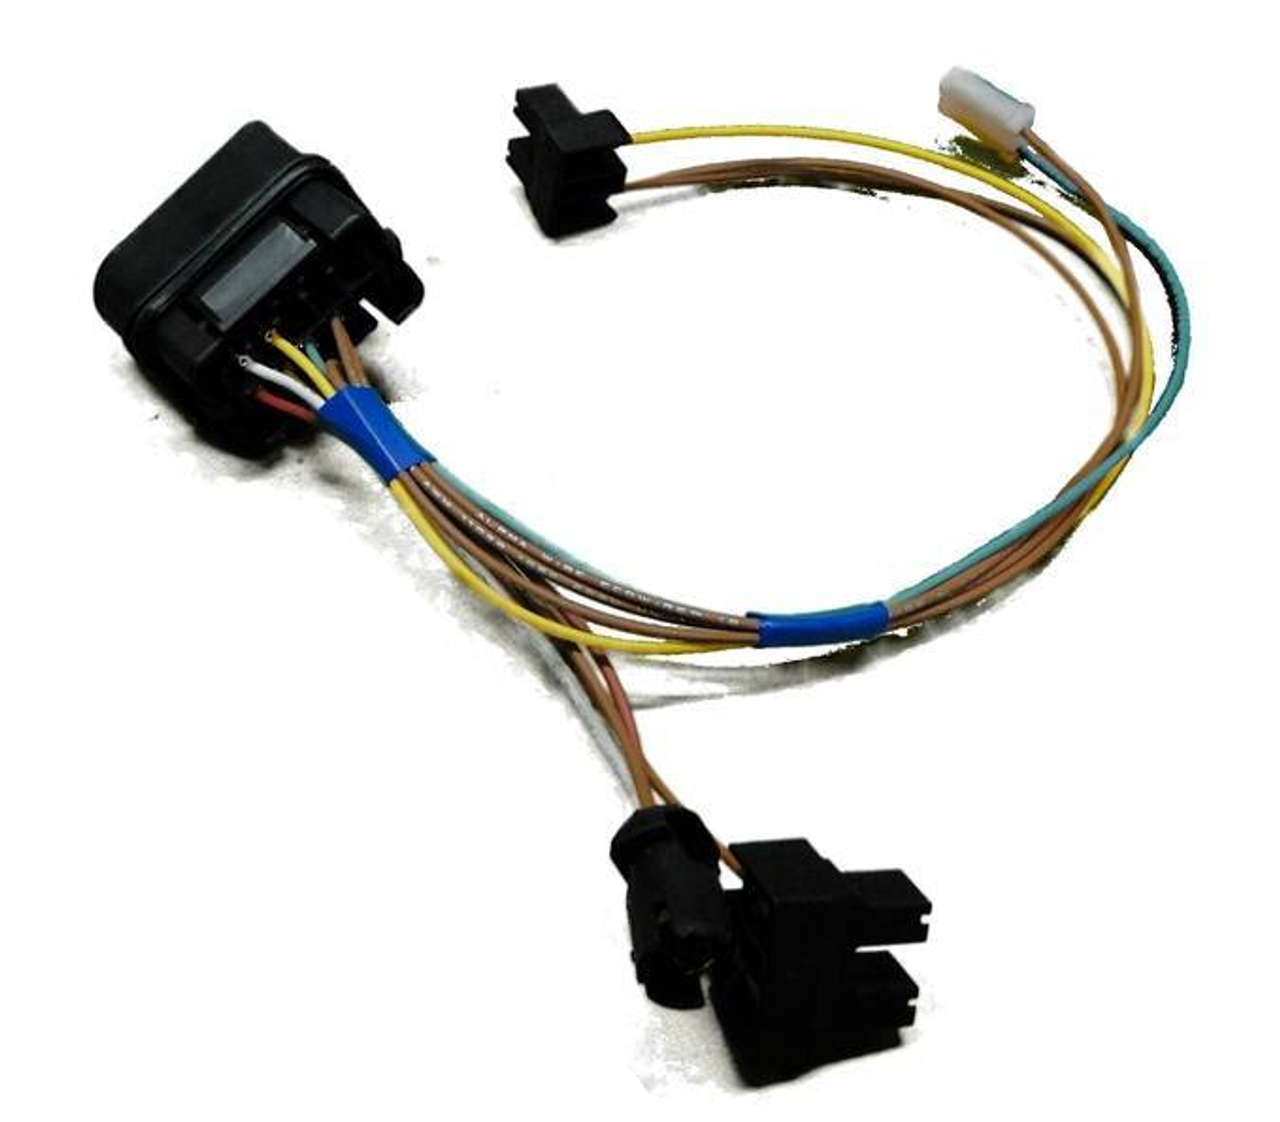 [SCHEMATICS_48IS]  Upgraded Headlight Wiring Harness | VW MK4 Golf | 1 Pack | Vw Golf Wire Harness |  | TuneMyEuro